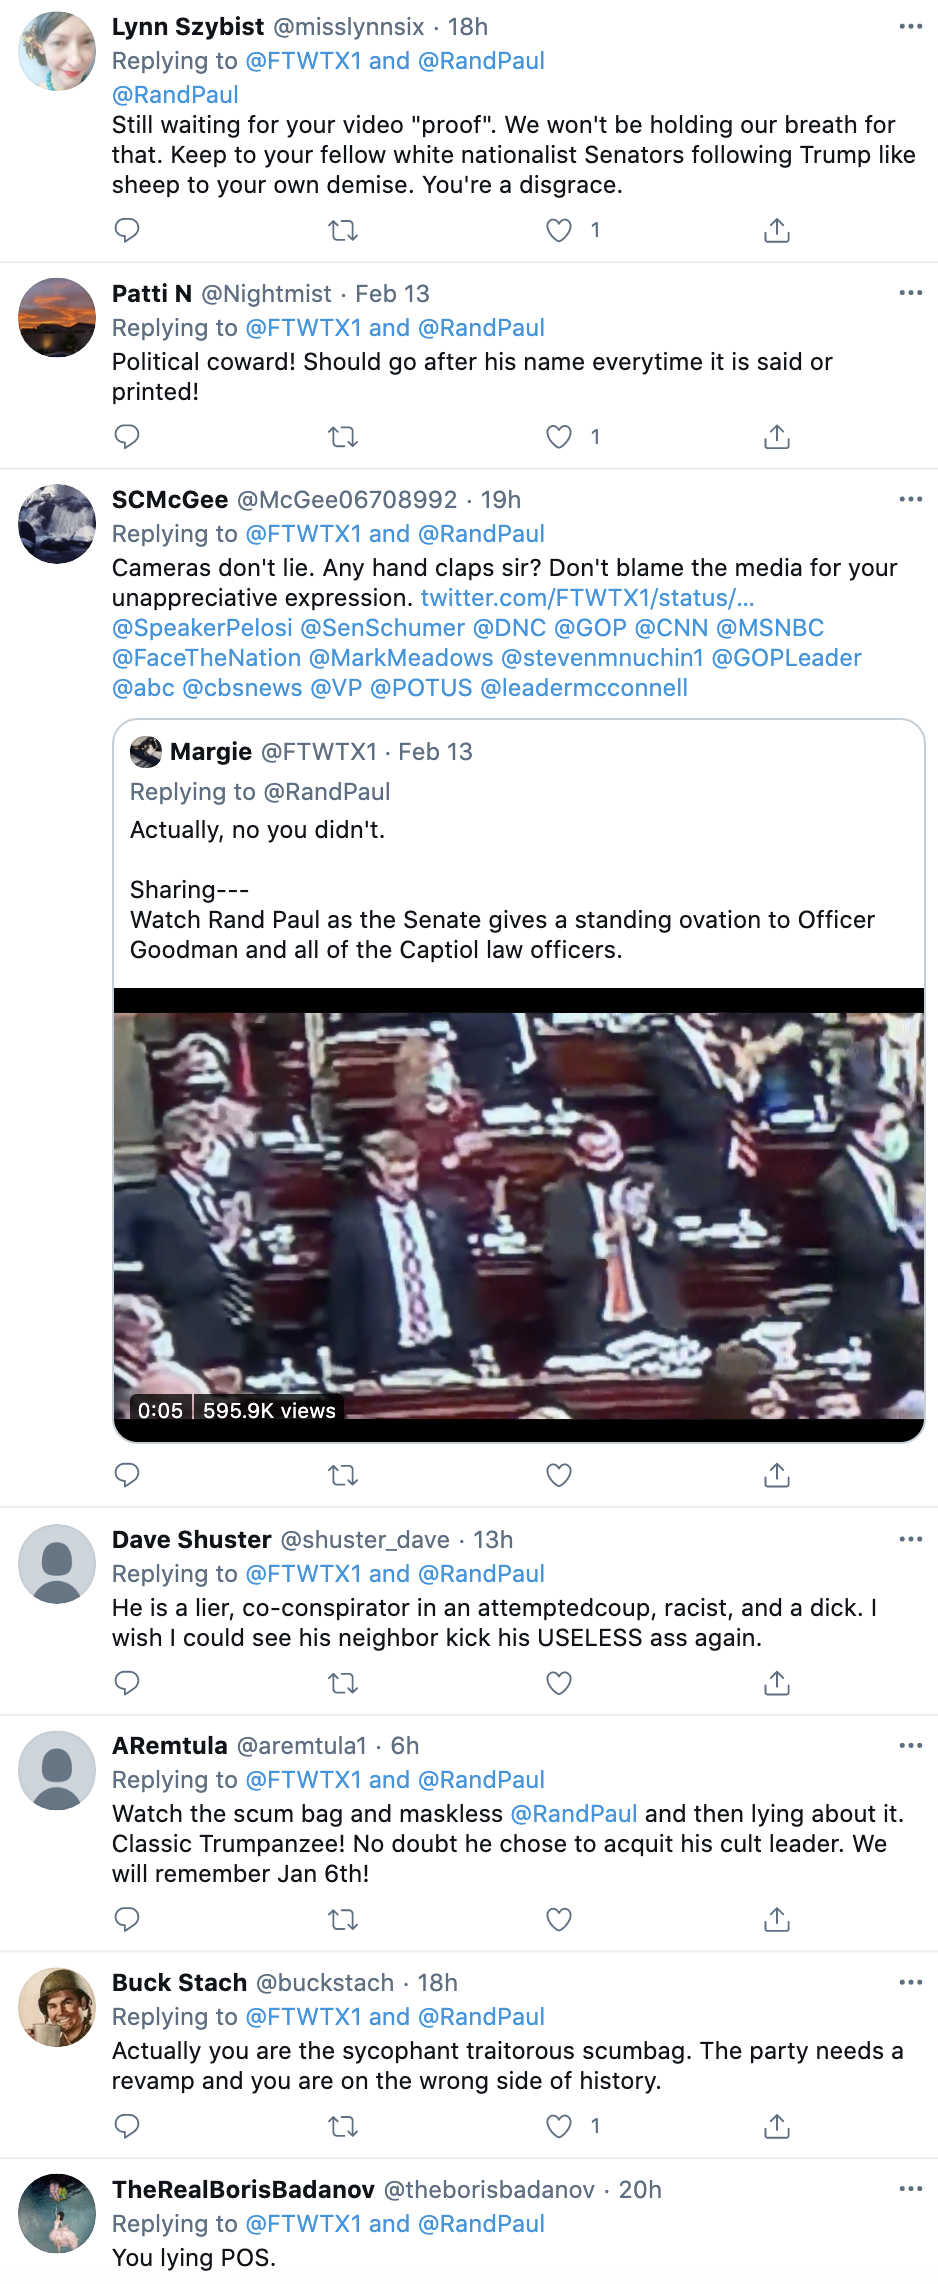 Screen-Shot-2021-02-15-at-9.36.04-AM Rand Paul Caught On Video Disrespecting Heroic Capitol Police Featured Military National Security Politics Top Stories